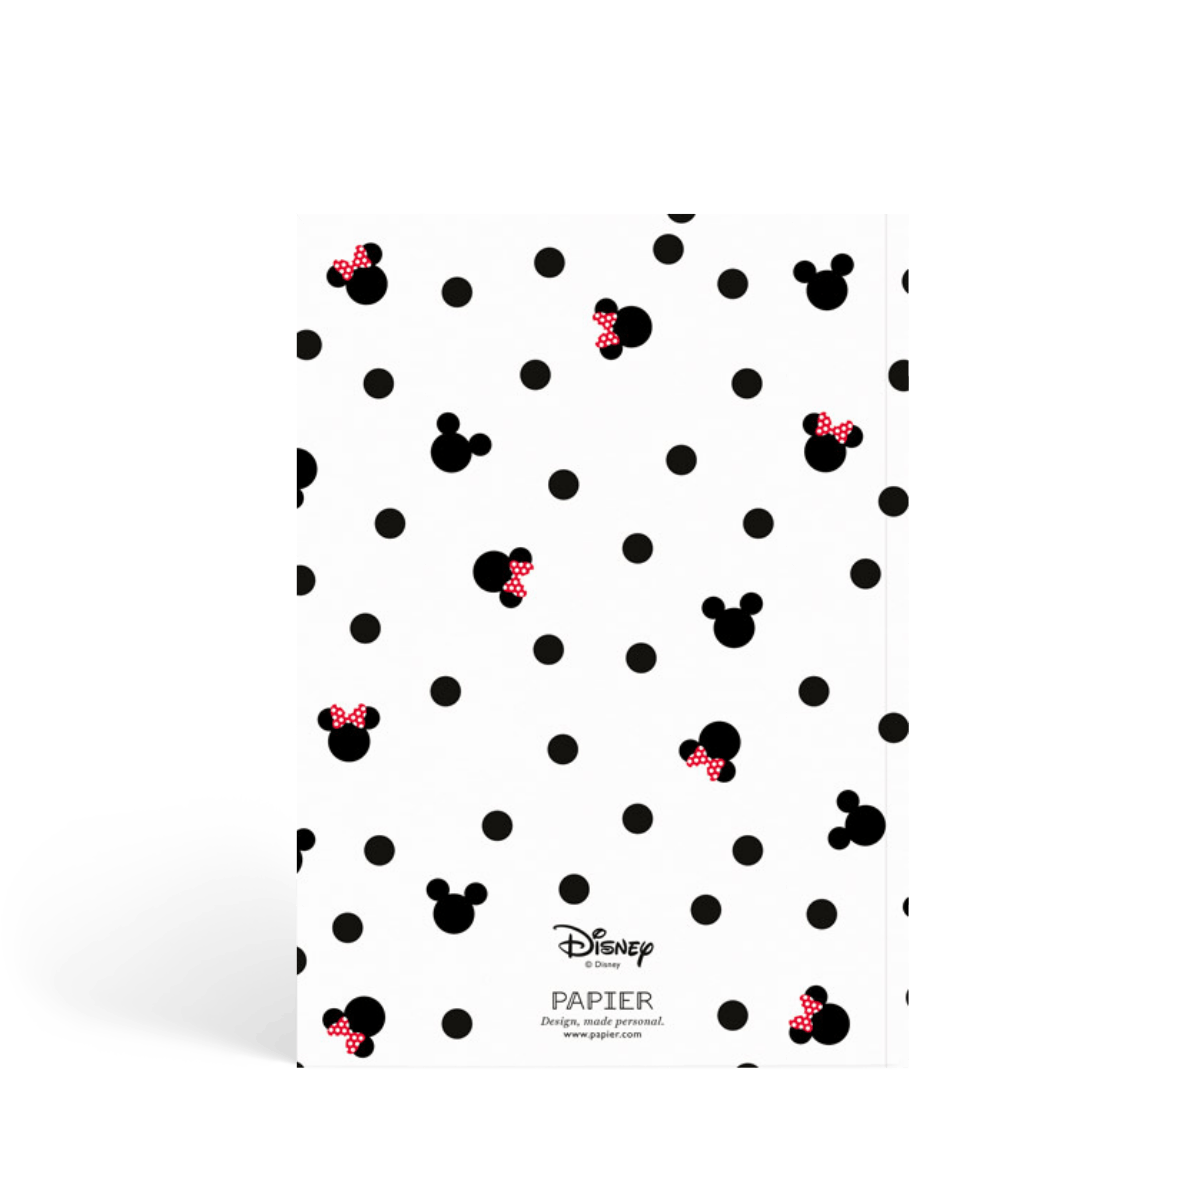 Https%3a%2f%2fwww.papier.com%2fproduct image%2f55809%2f5%2fmickey minnie mouse 13403 back 1542299800.png?ixlib=rb 1.1